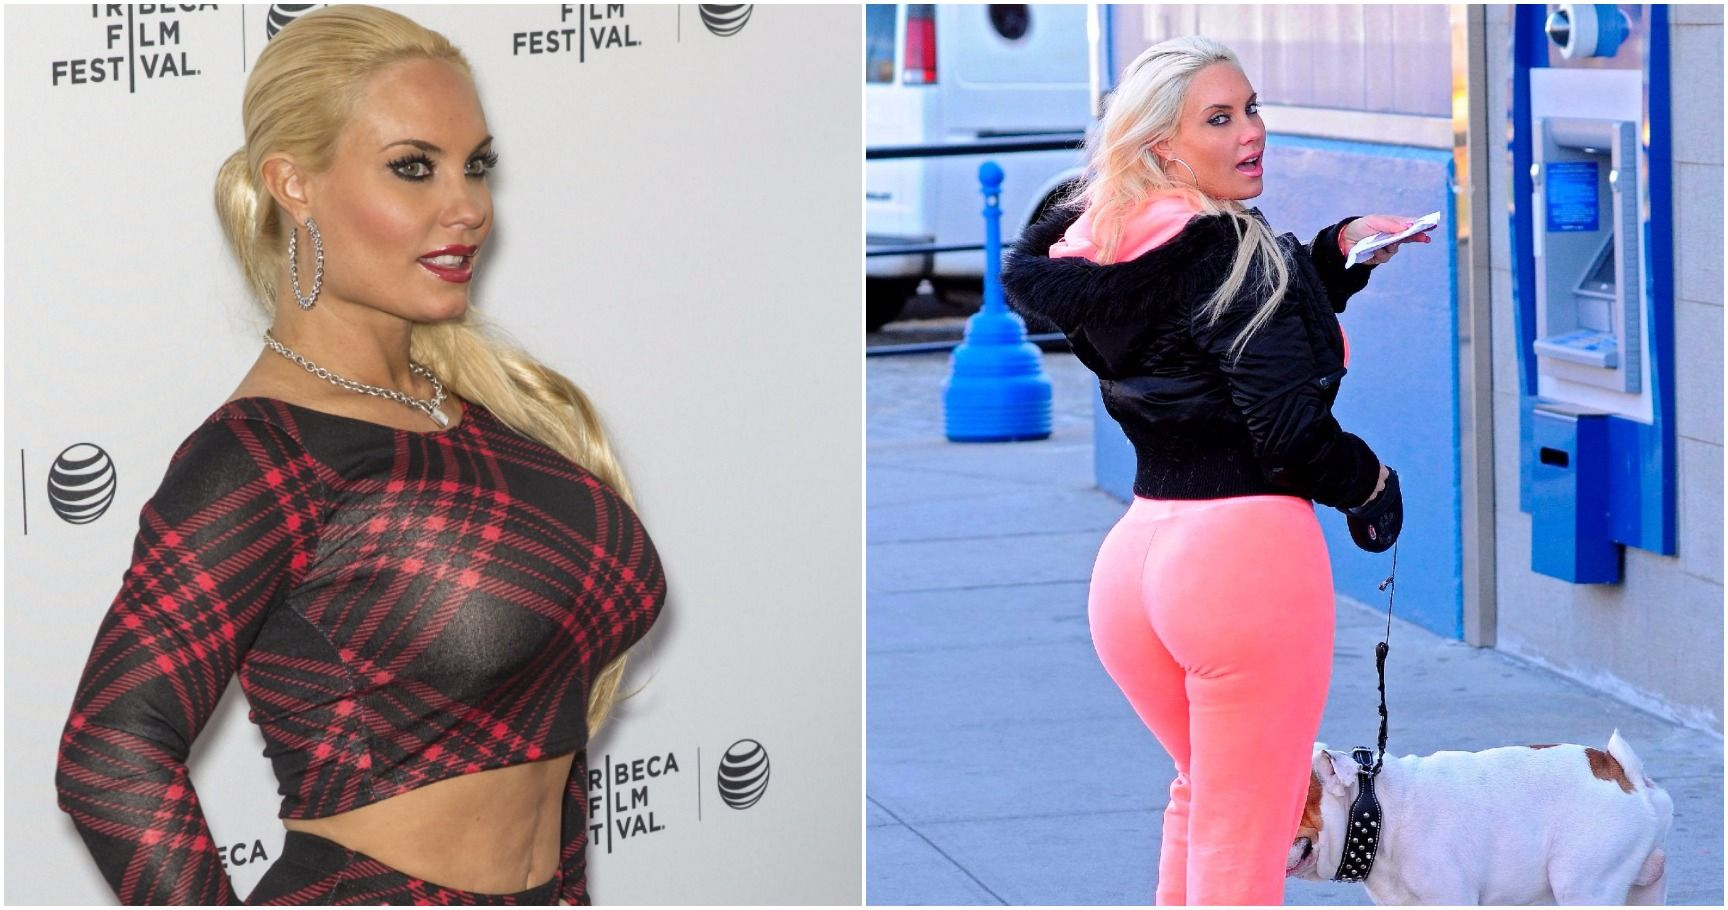 15 Steamy Photos of Coco Austin You NEED To See